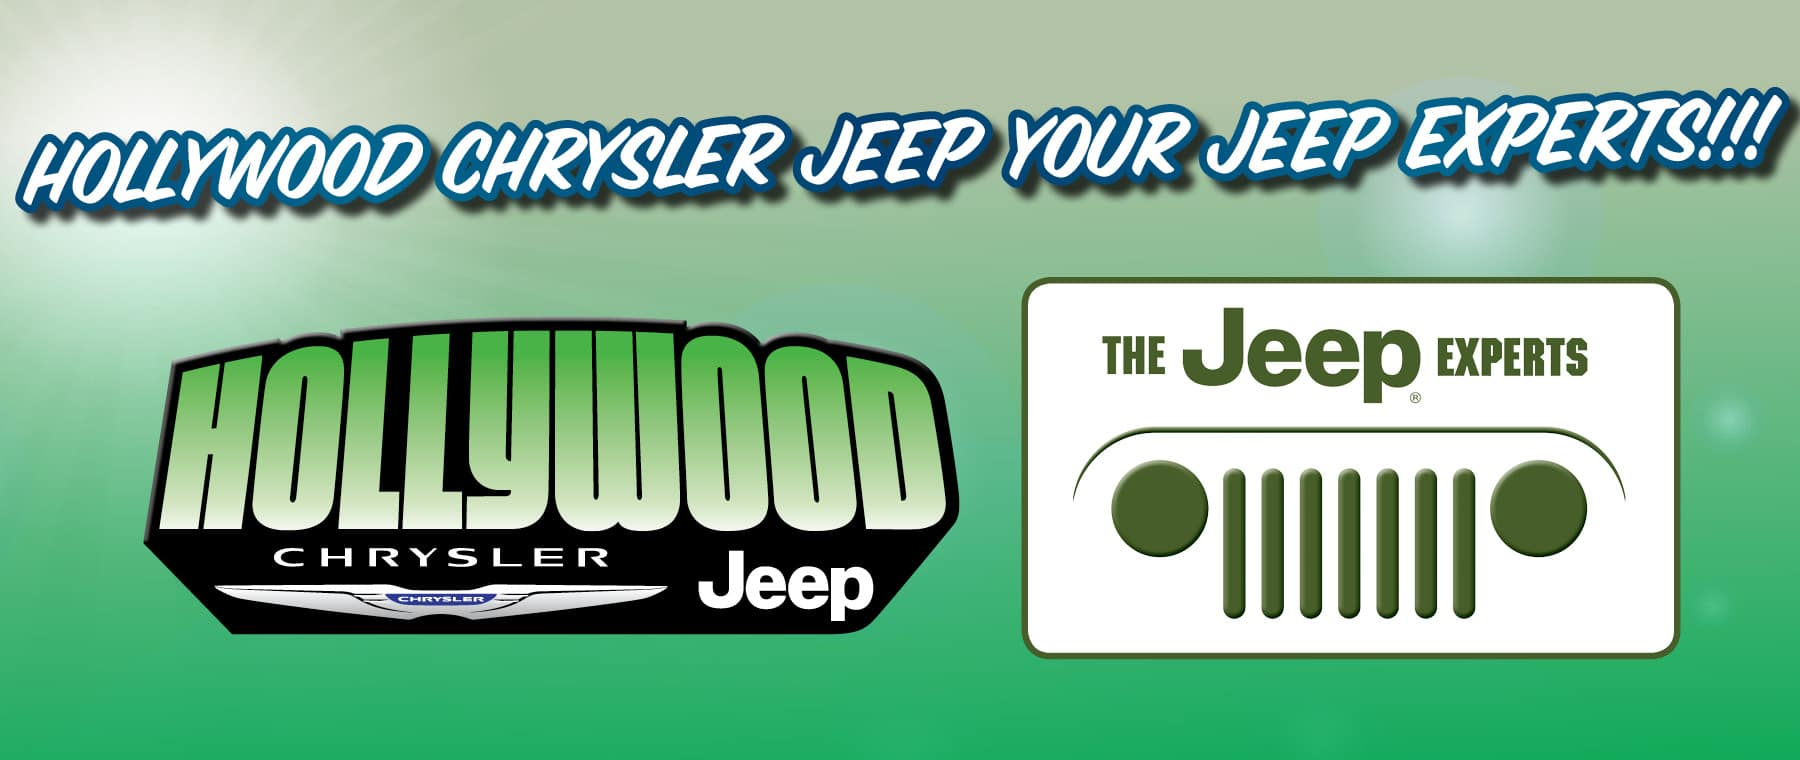 The Jeep Experts